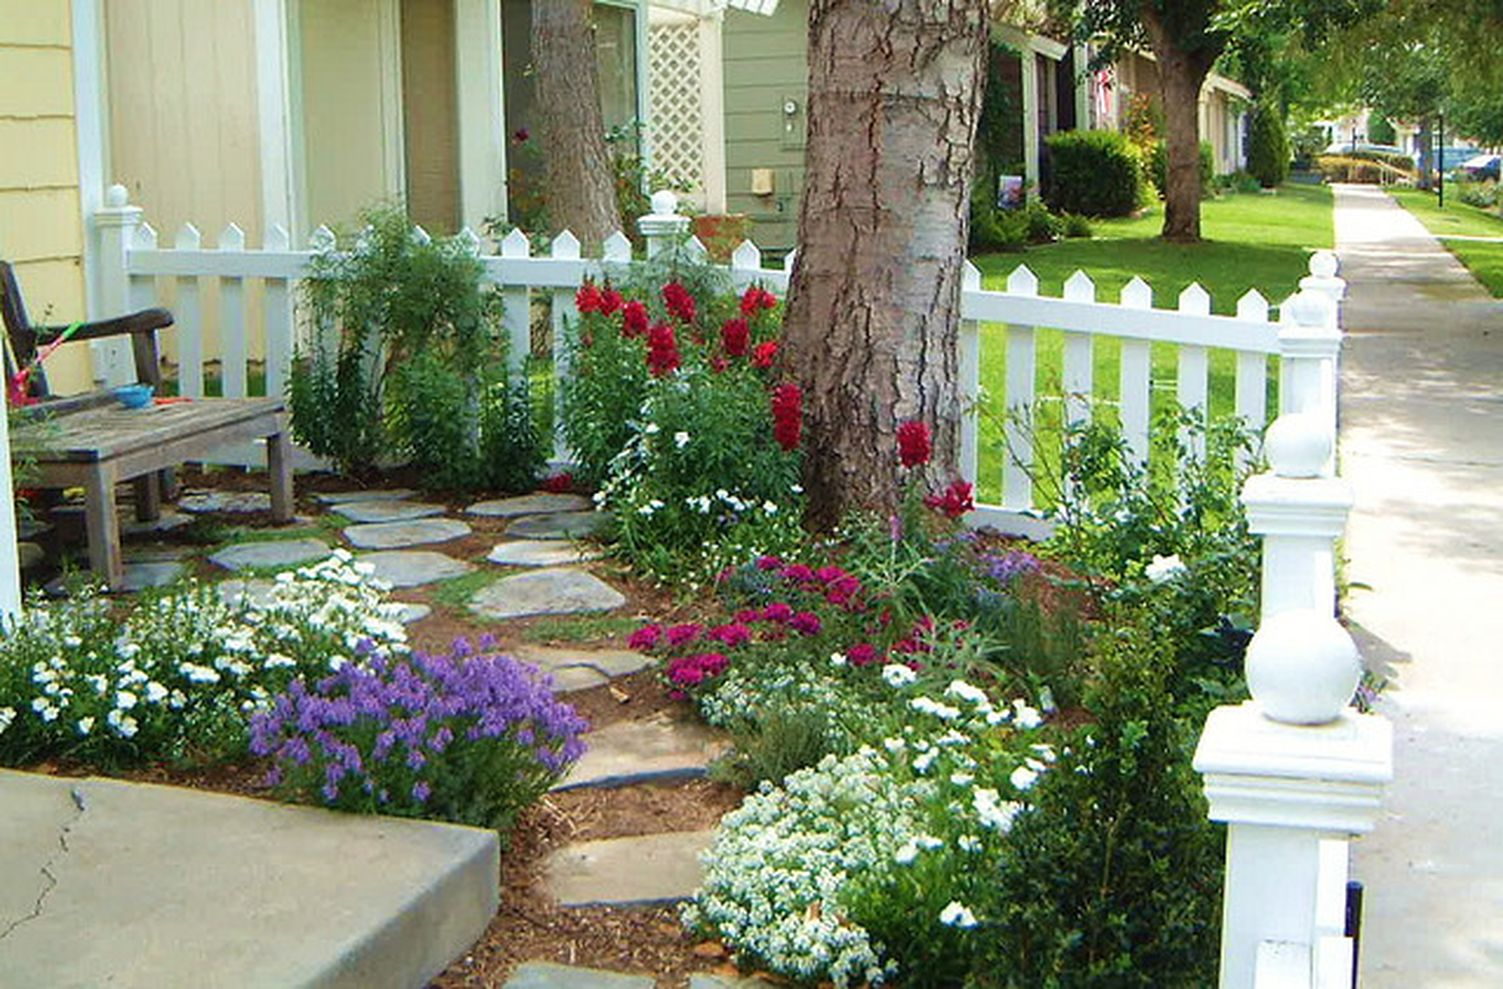 87 Cute and Simple Tiny Patio Garden Ideas - ROUNDECOR